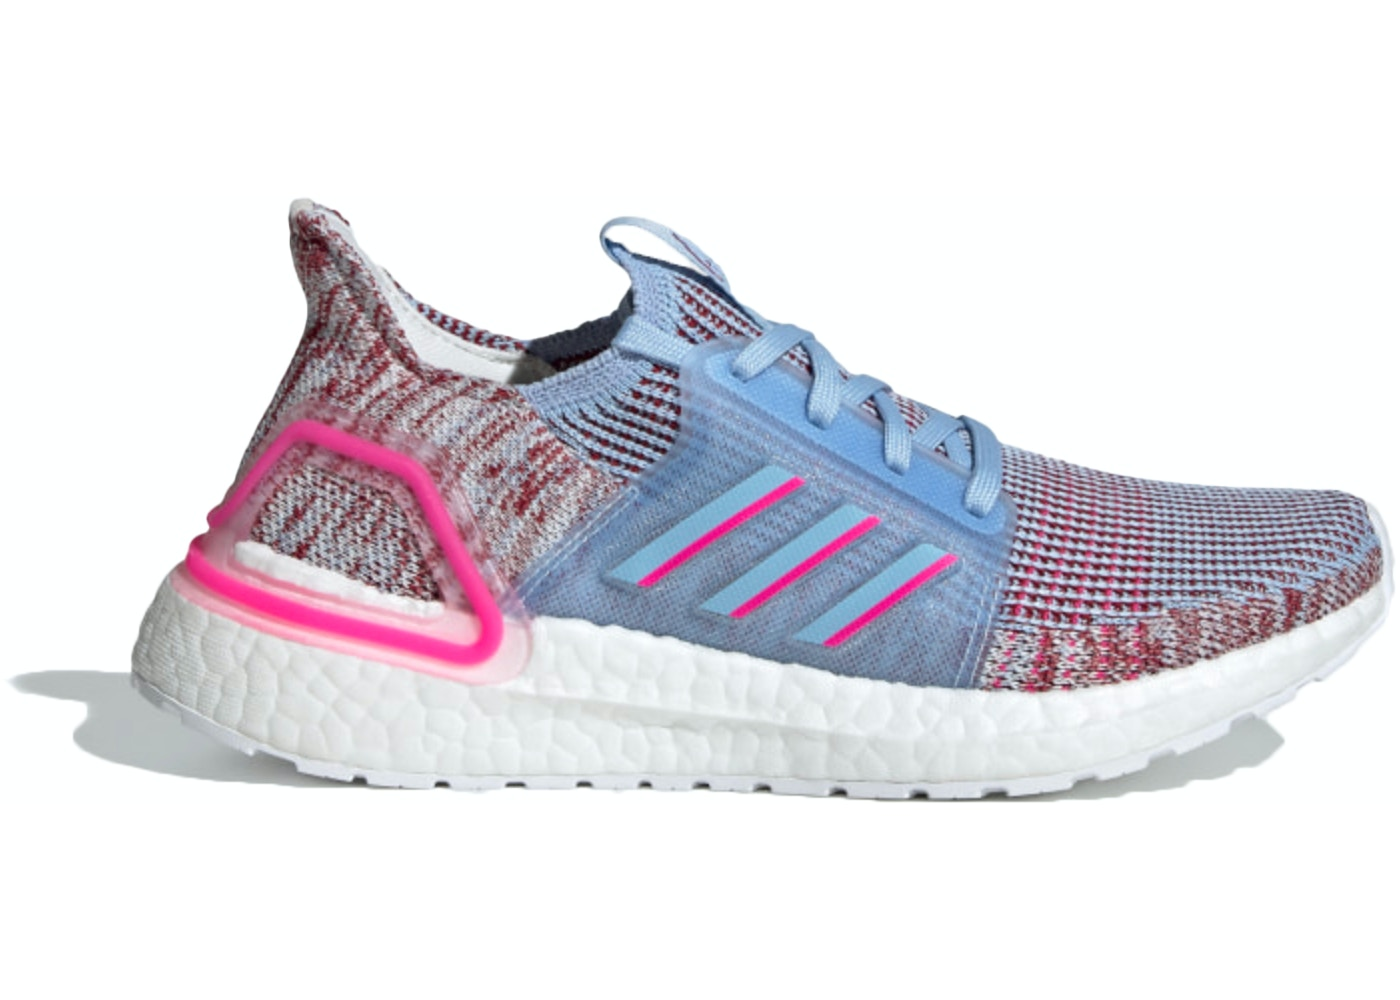 Buy Adidas Ultra Boost 19 Size 7 Shoes Deadstock Sneakers